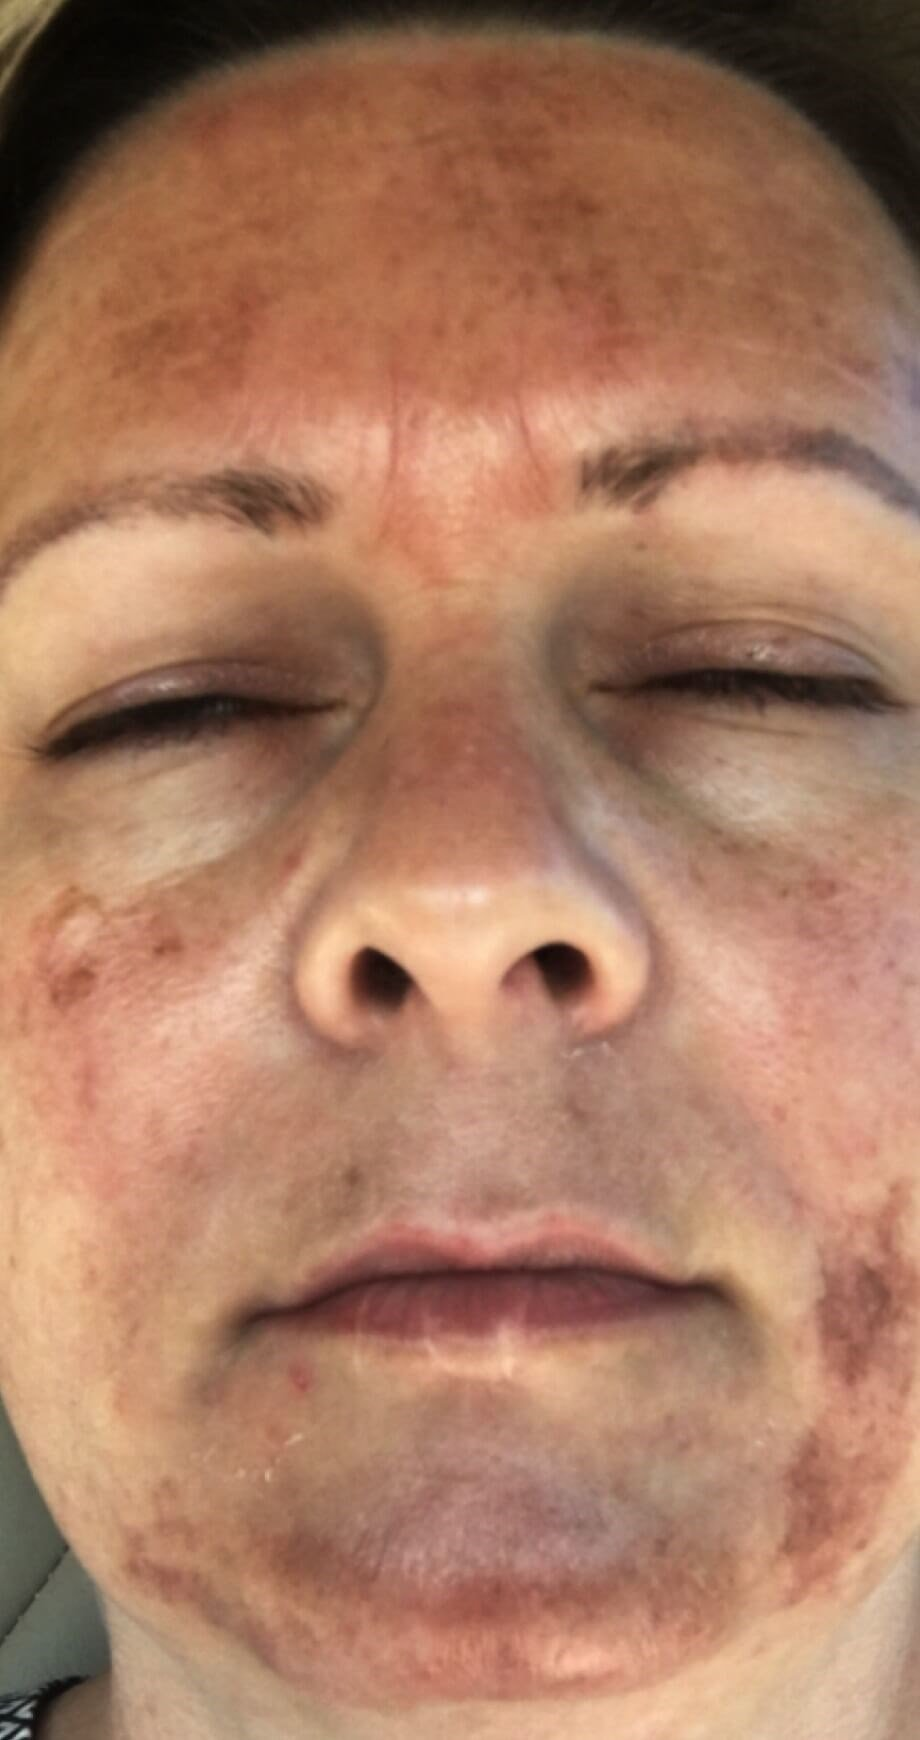 CHEMICAL PEEL RESULTS Before